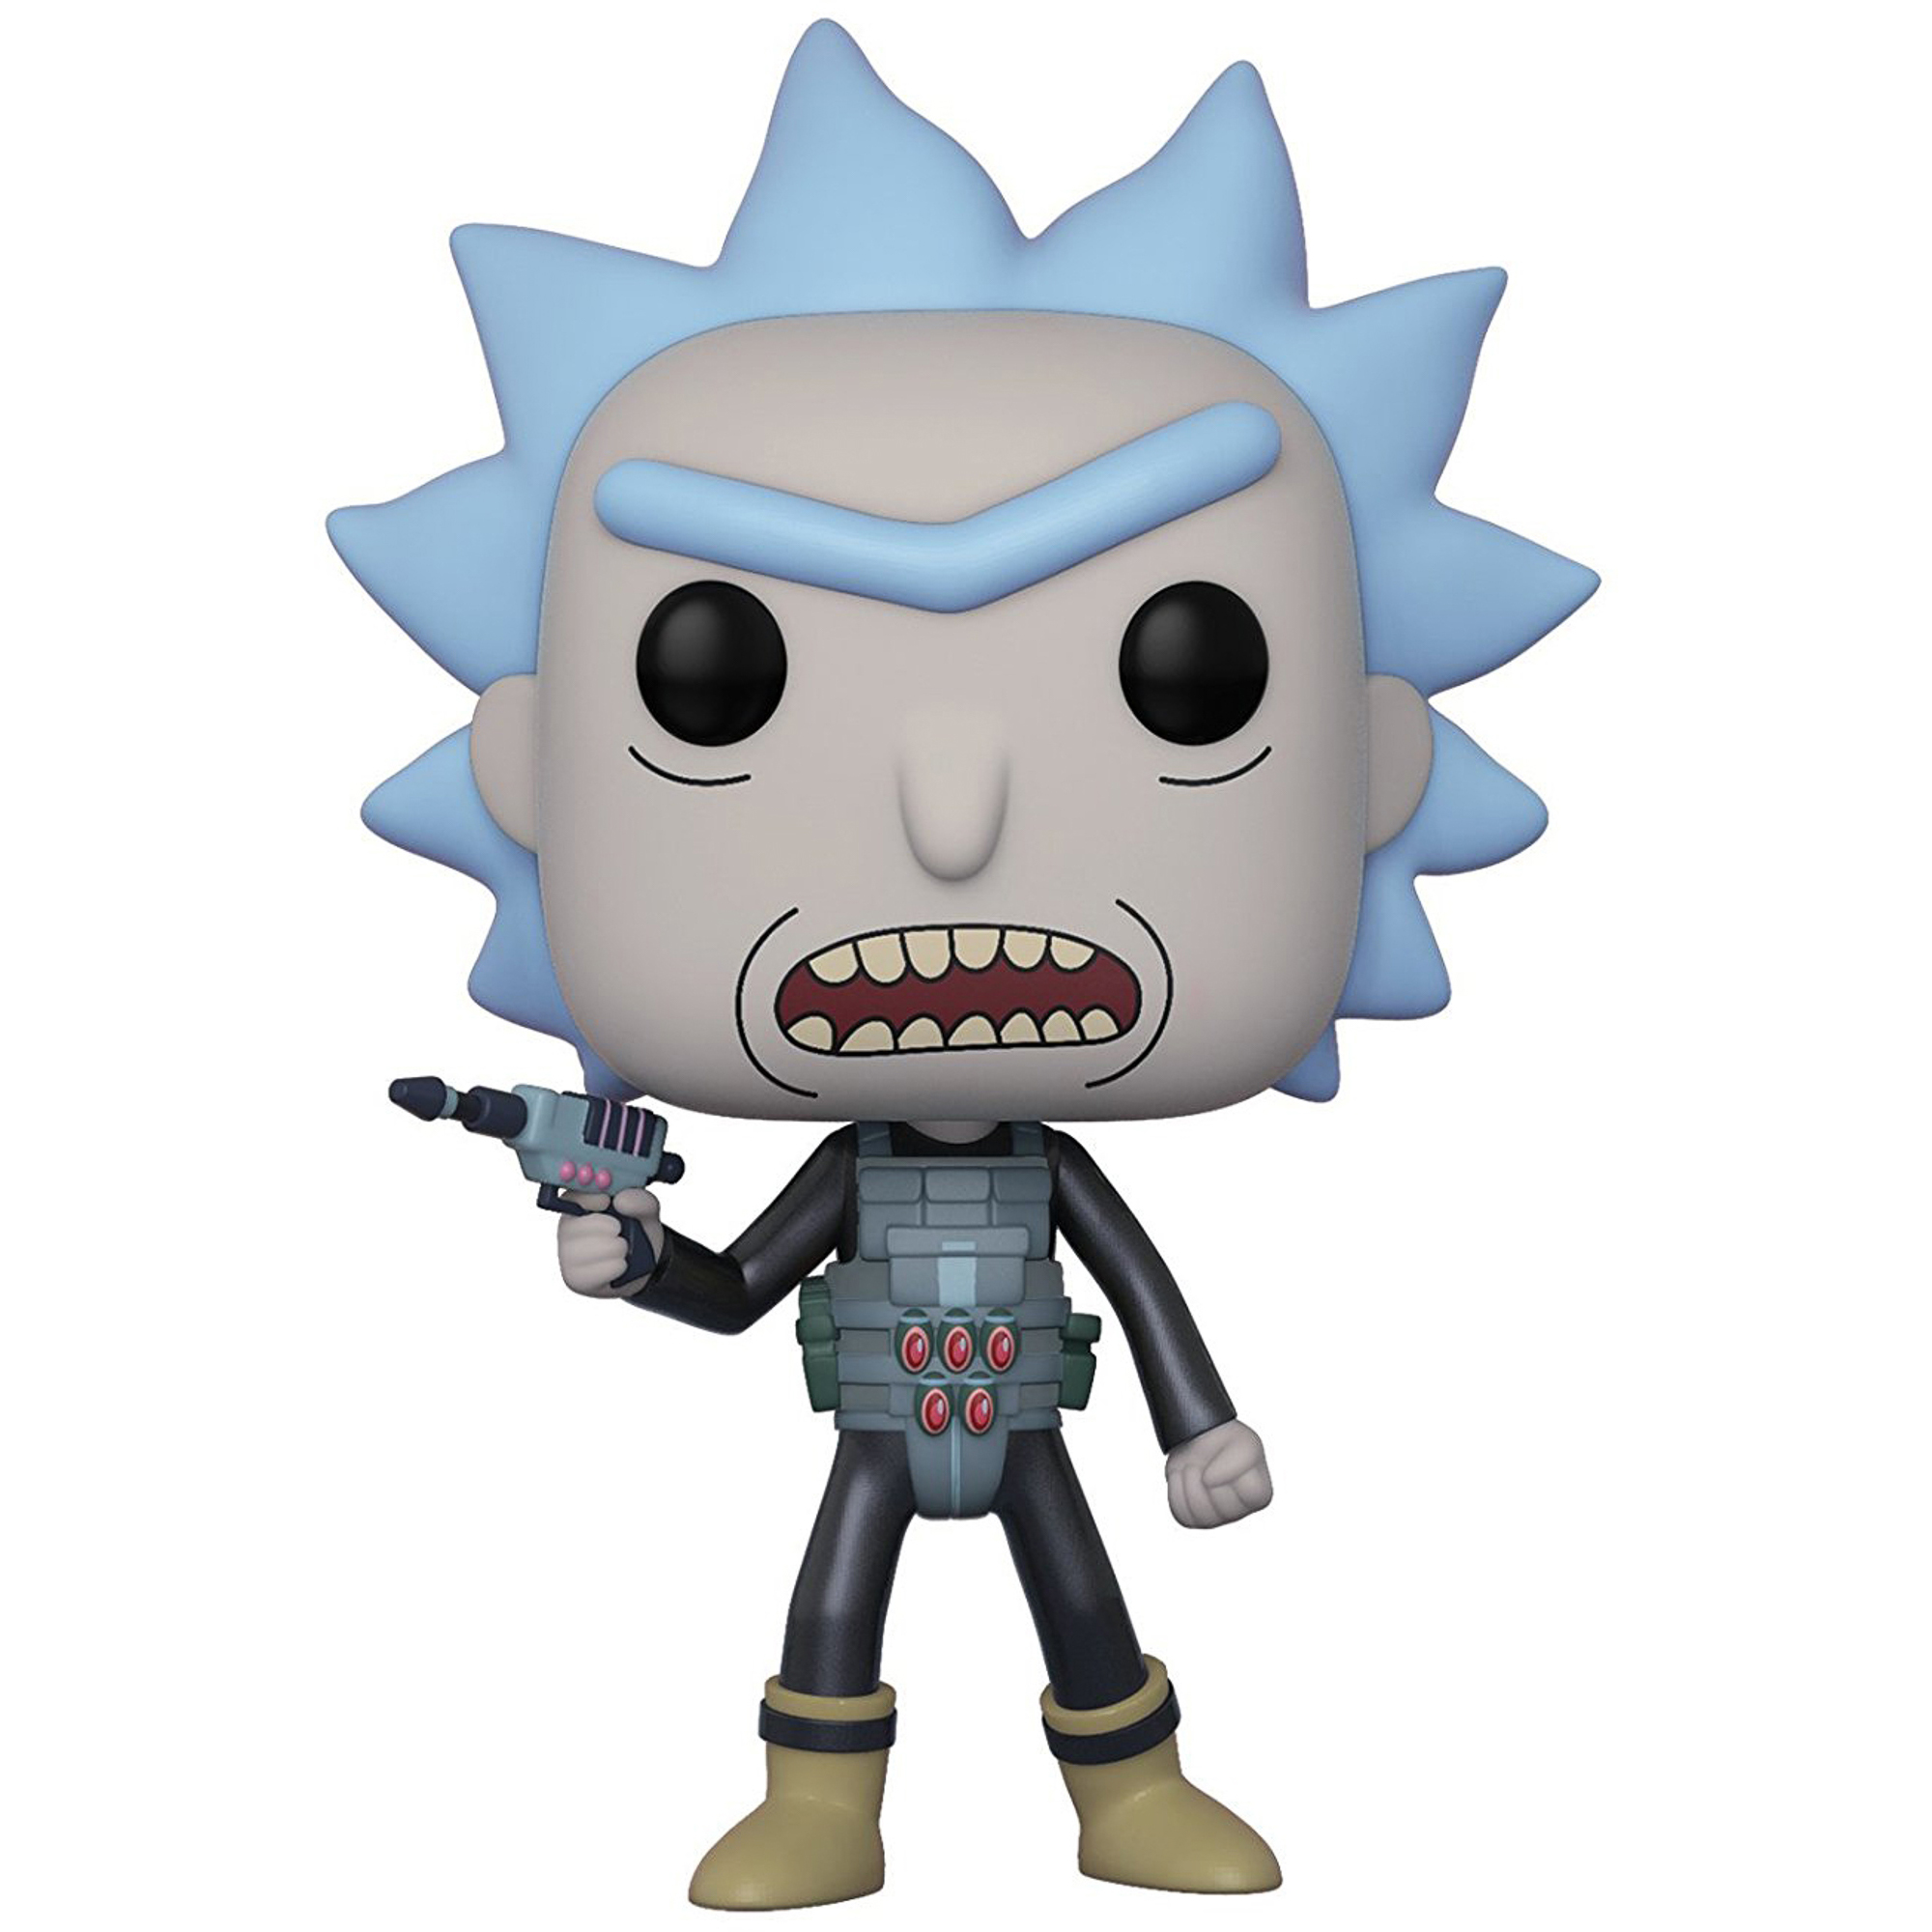 фигурка funko pop vinyl rick and morty 10 rick 47379ie Фигурка Funko Rick and Morty Prison Break Rick